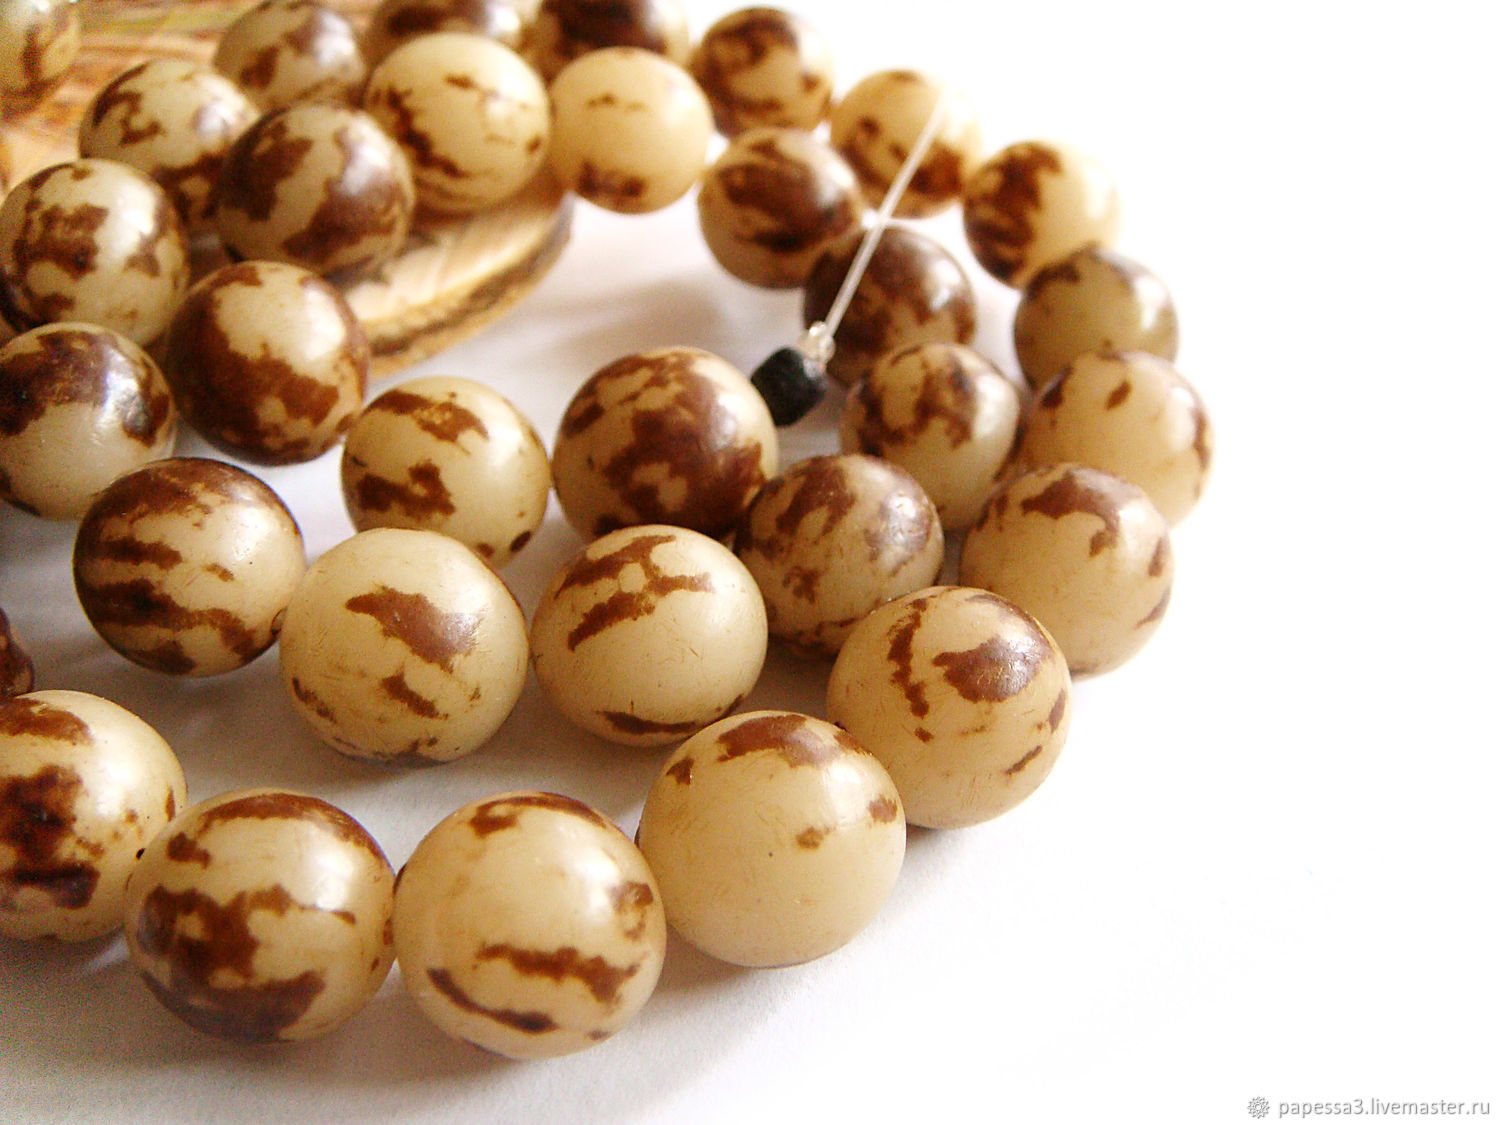 Beads the seeds of palm trees Storms 10mm, Beads1, Bryansk,  Фото №1